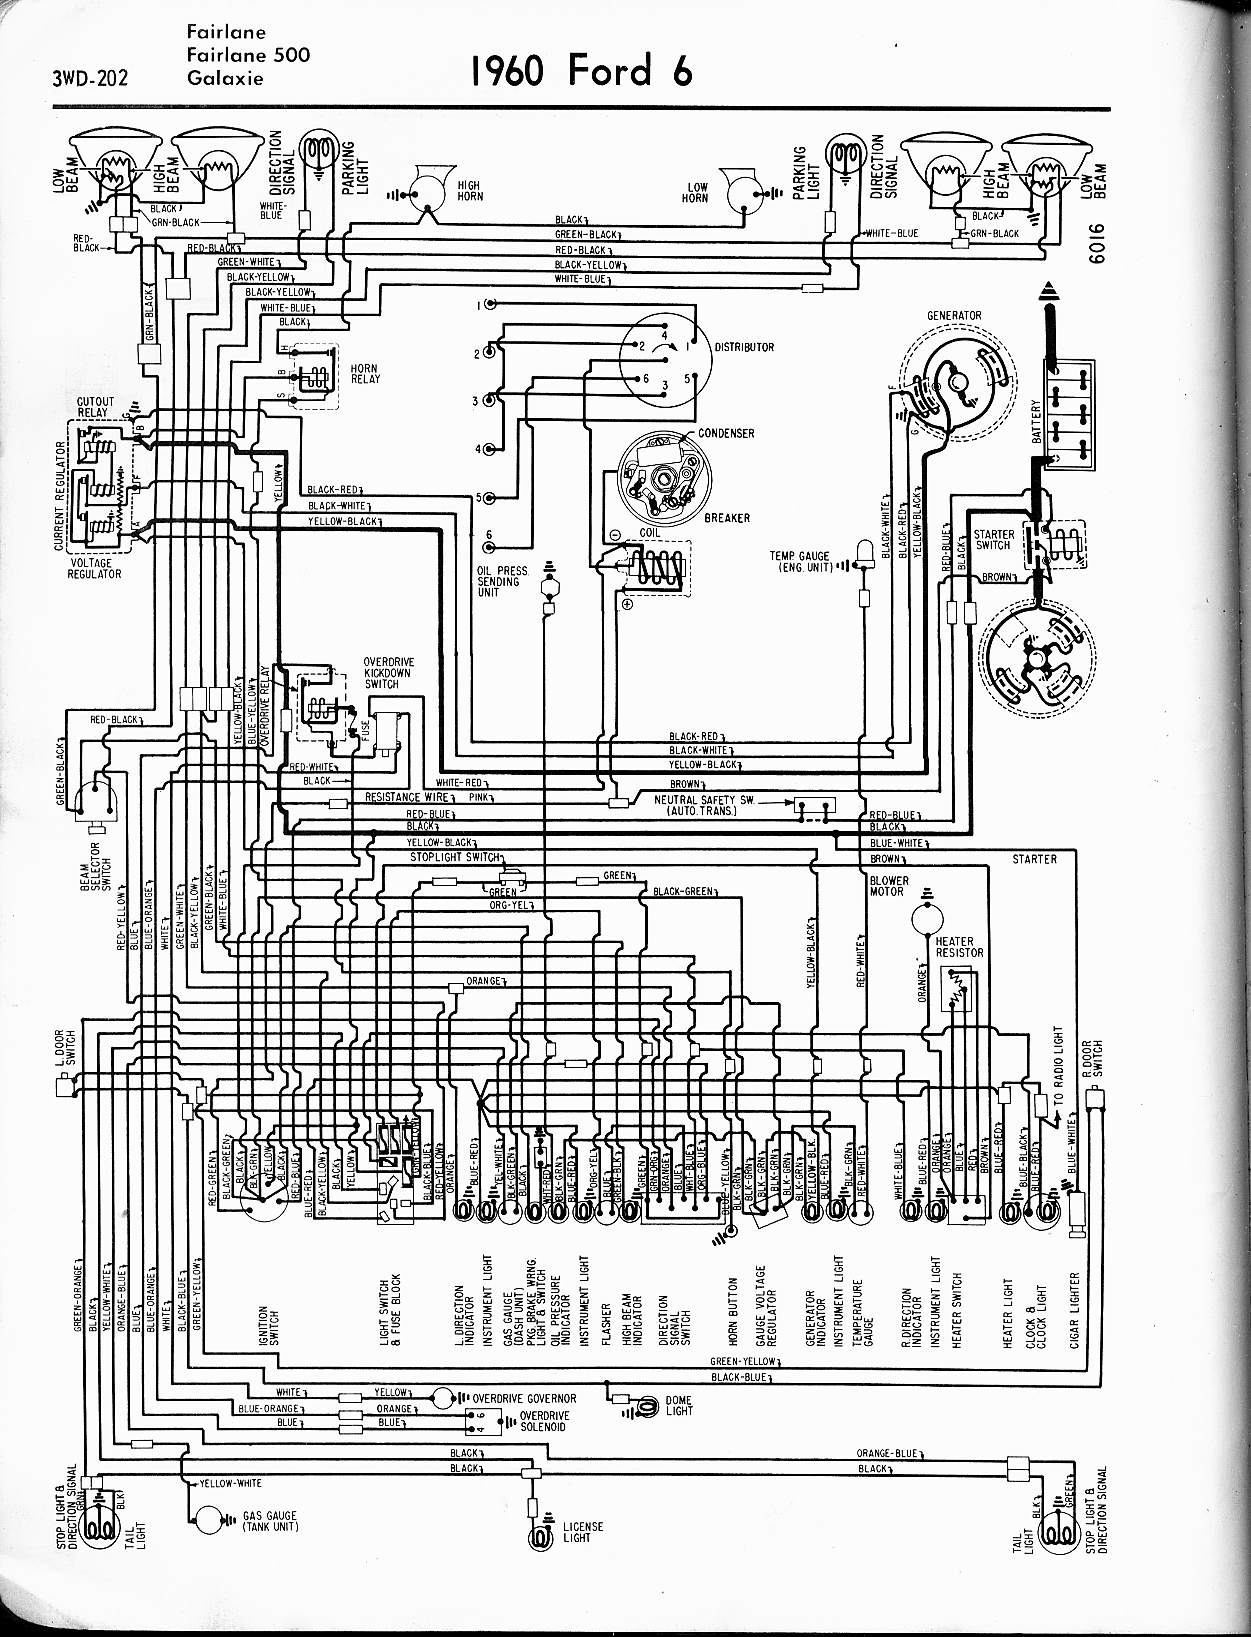 MWire5765 202 57 65 ford wiring diagrams ford truck wiring schematics at bayanpartner.co